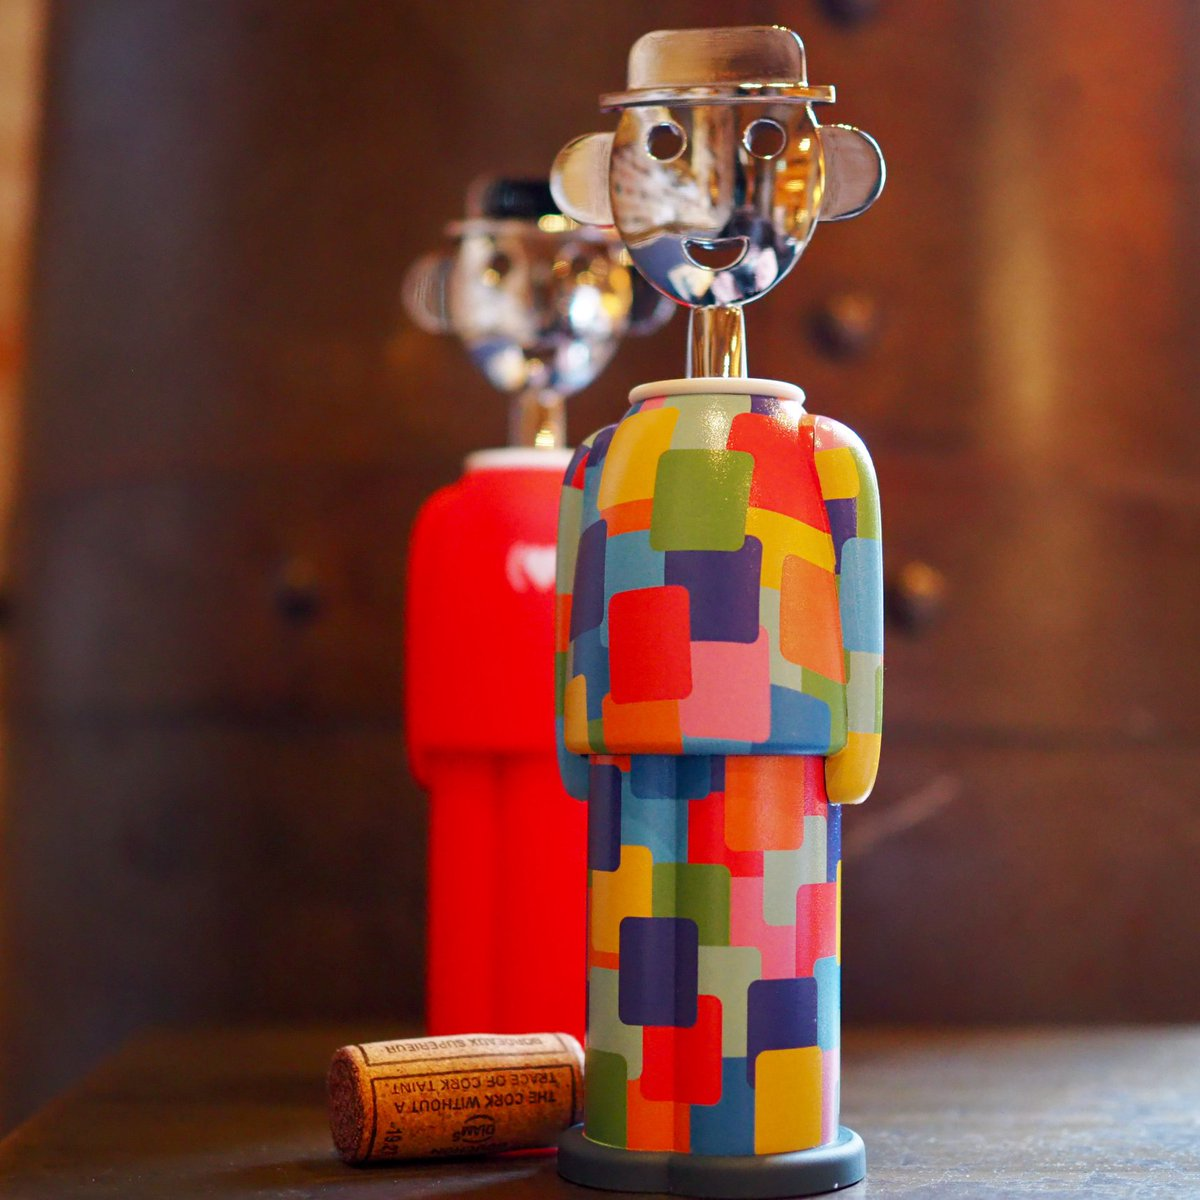 #DistilleryTO #FeatureFriday! @bergodesigns features home accessories, Children's toys, jewelry and furniture from internationally renowned and award-winning designers. Check out the incredible selection at 28 Tank House Lane http://www.bergodesigns.capic.twitter.com/qJeN5UP2QF